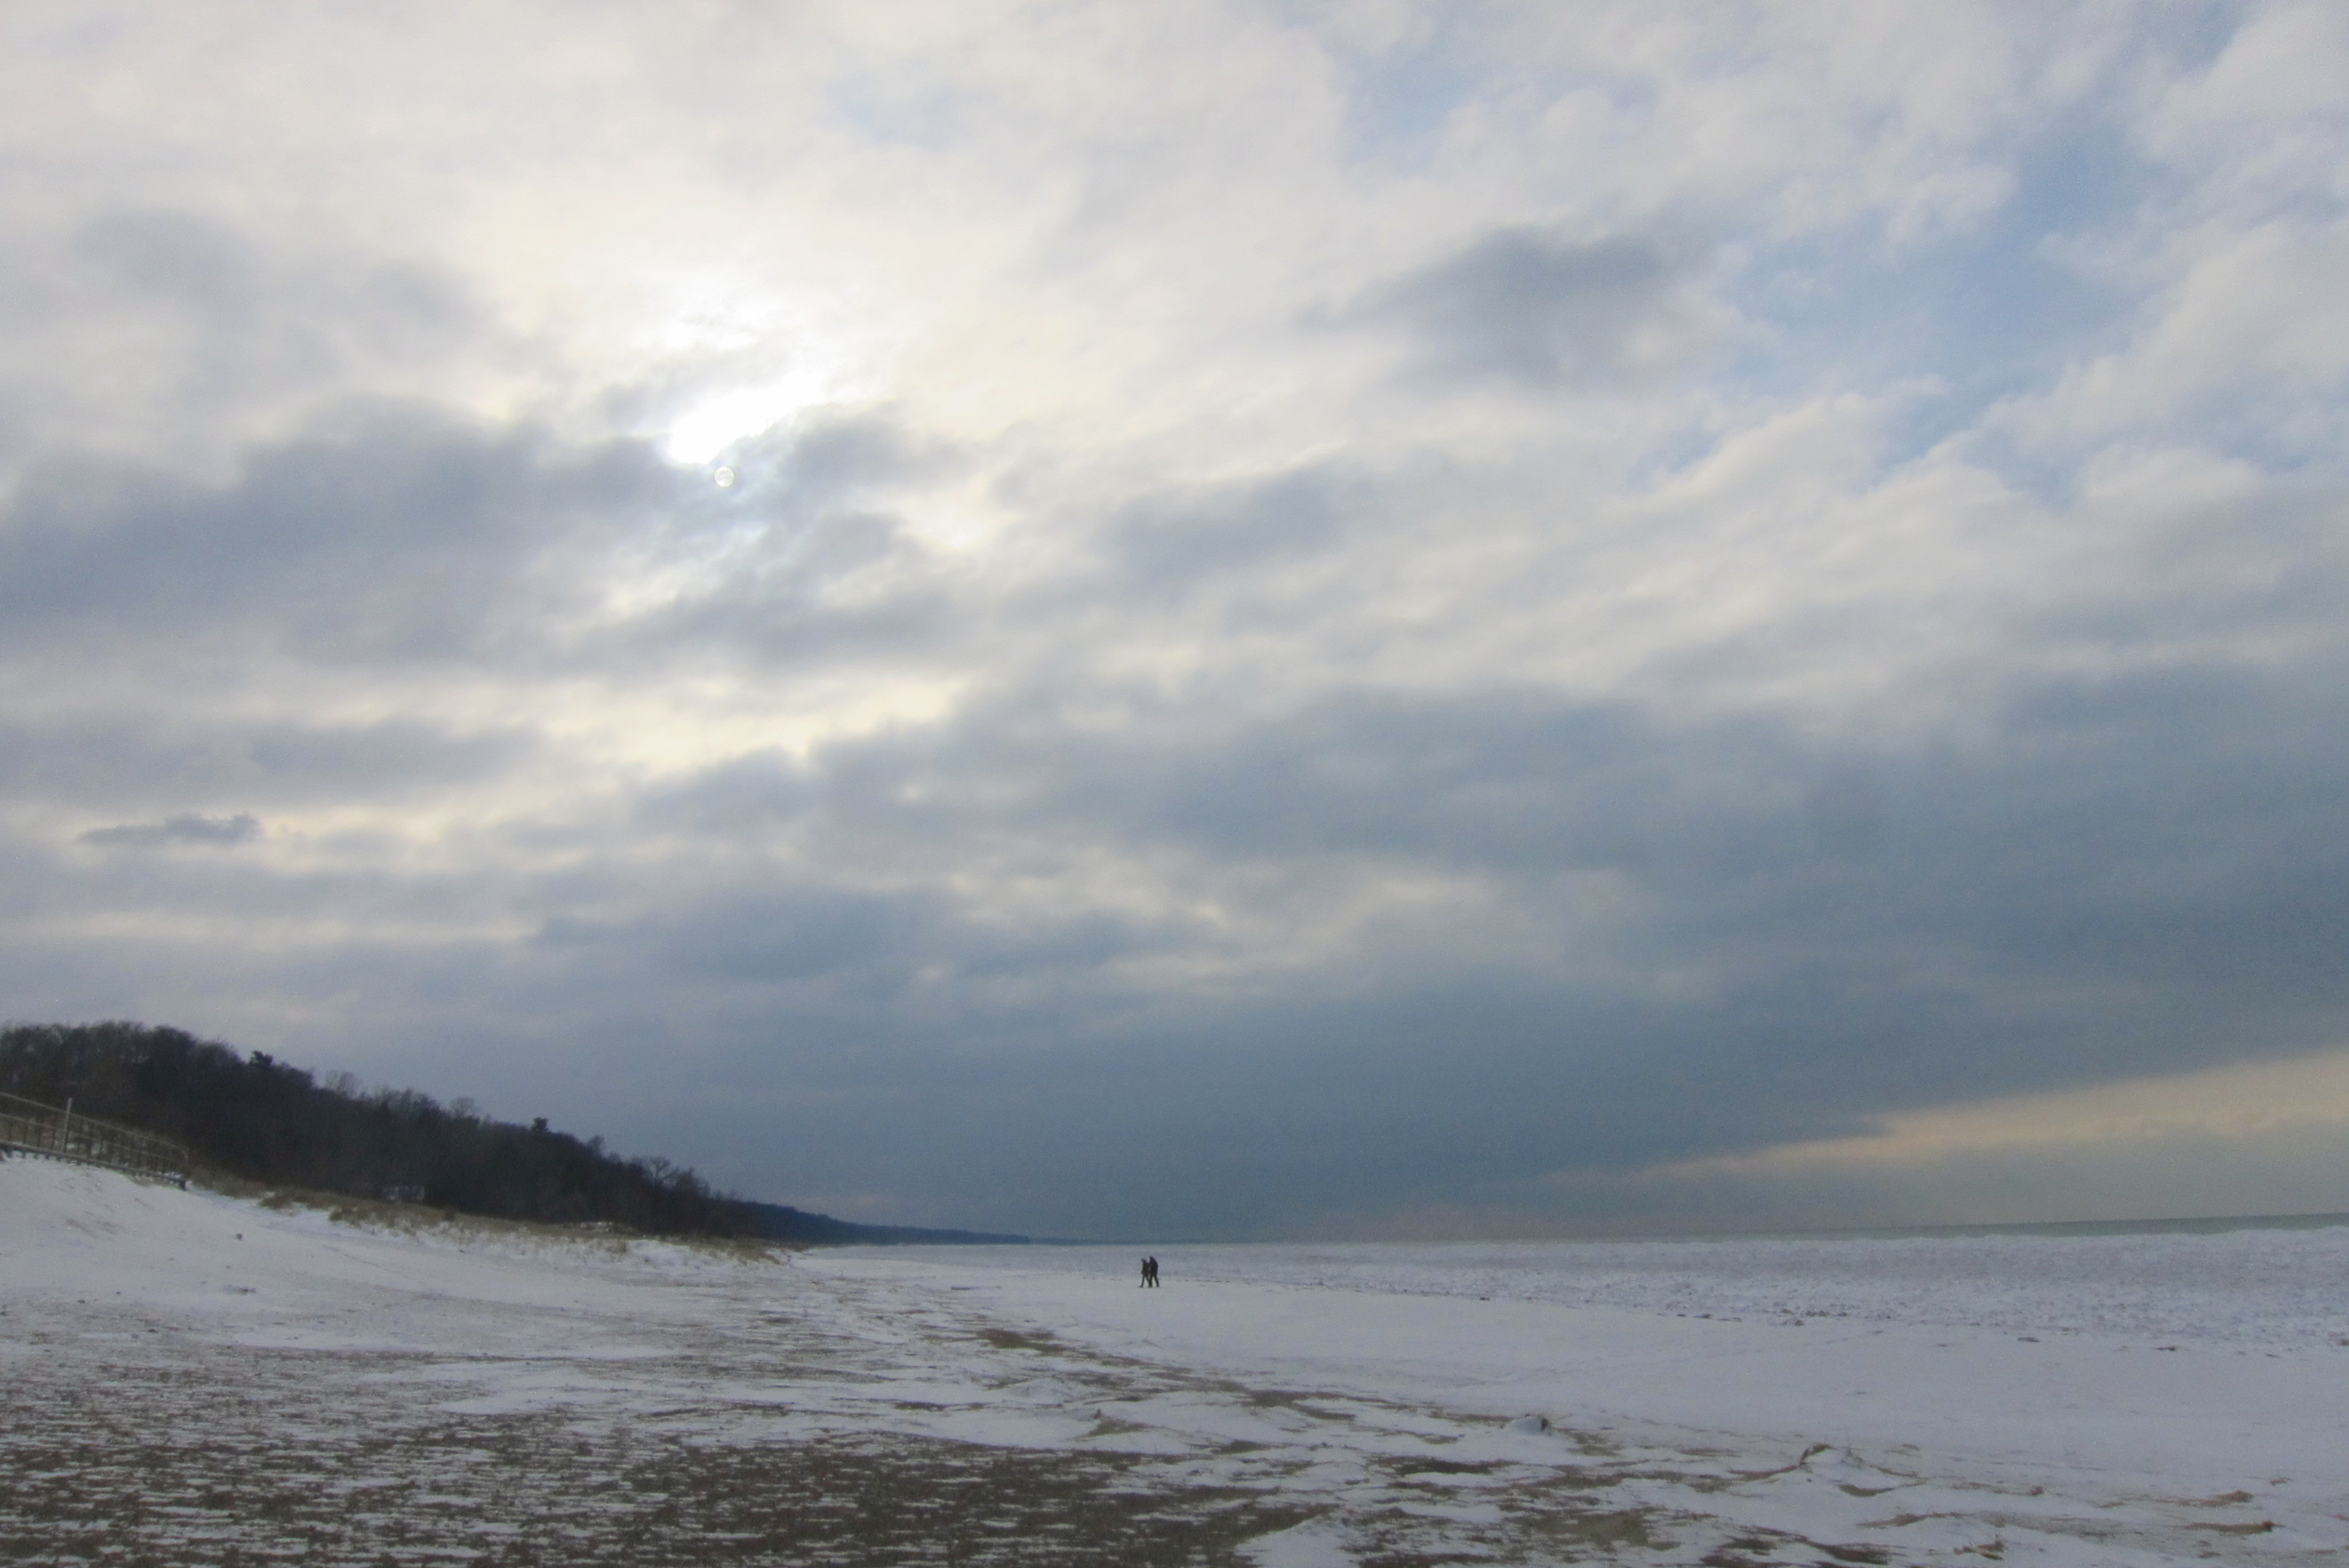 The shore of Lake Michigan in winter.